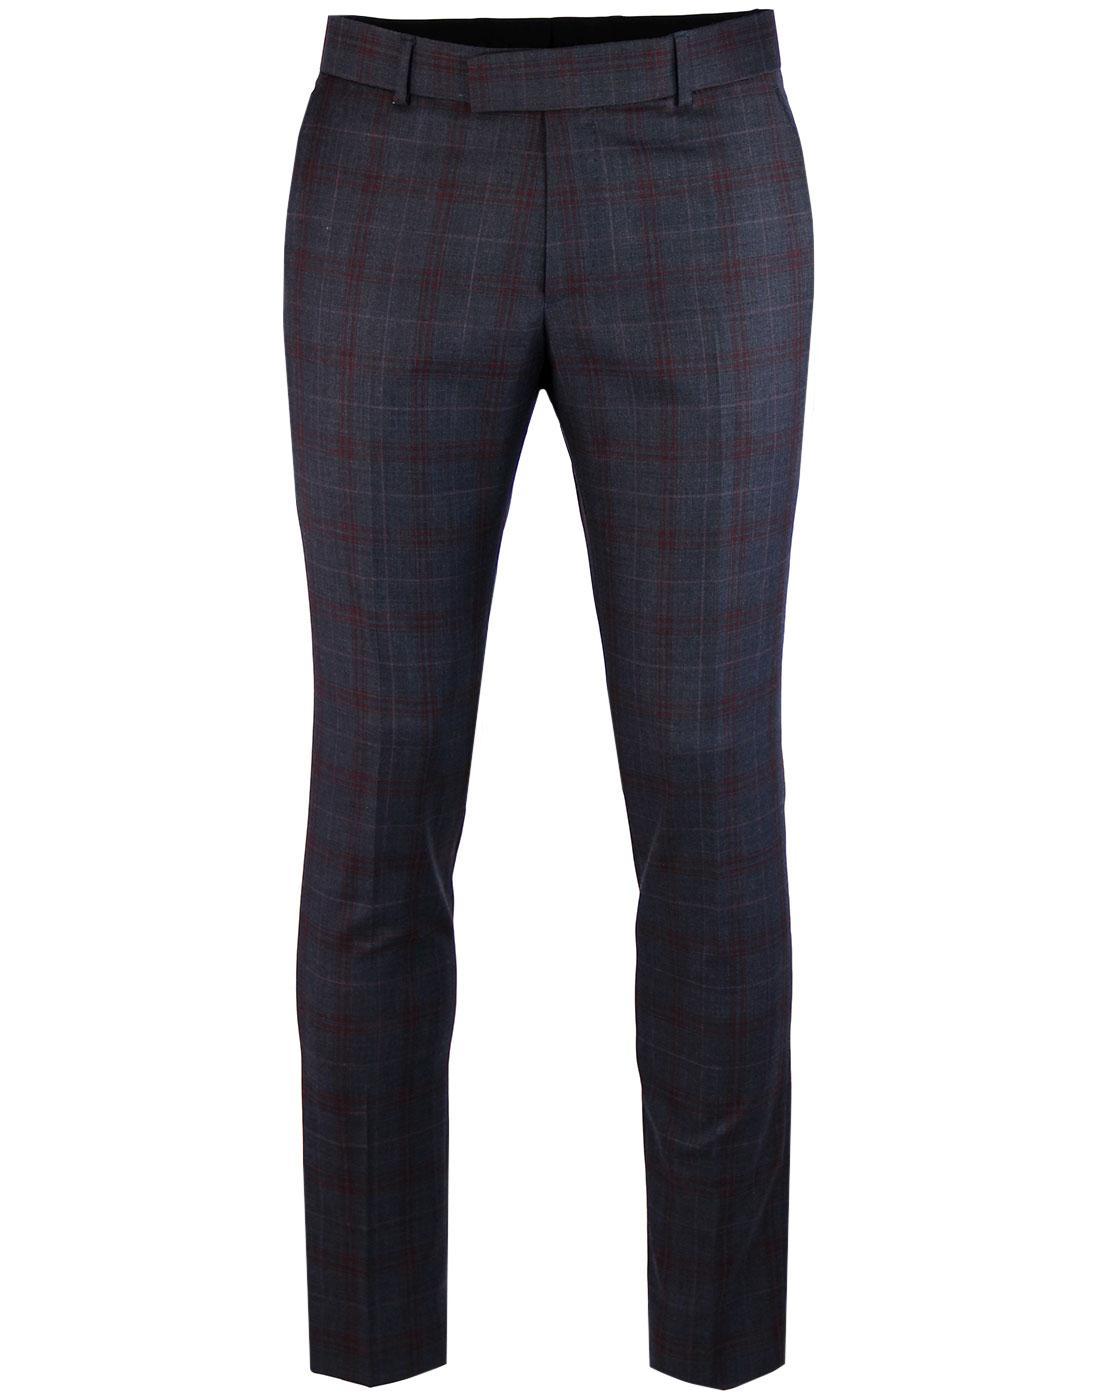 MADCAP ENGLAND Mod Plaid Check Suit Trousers NAVY